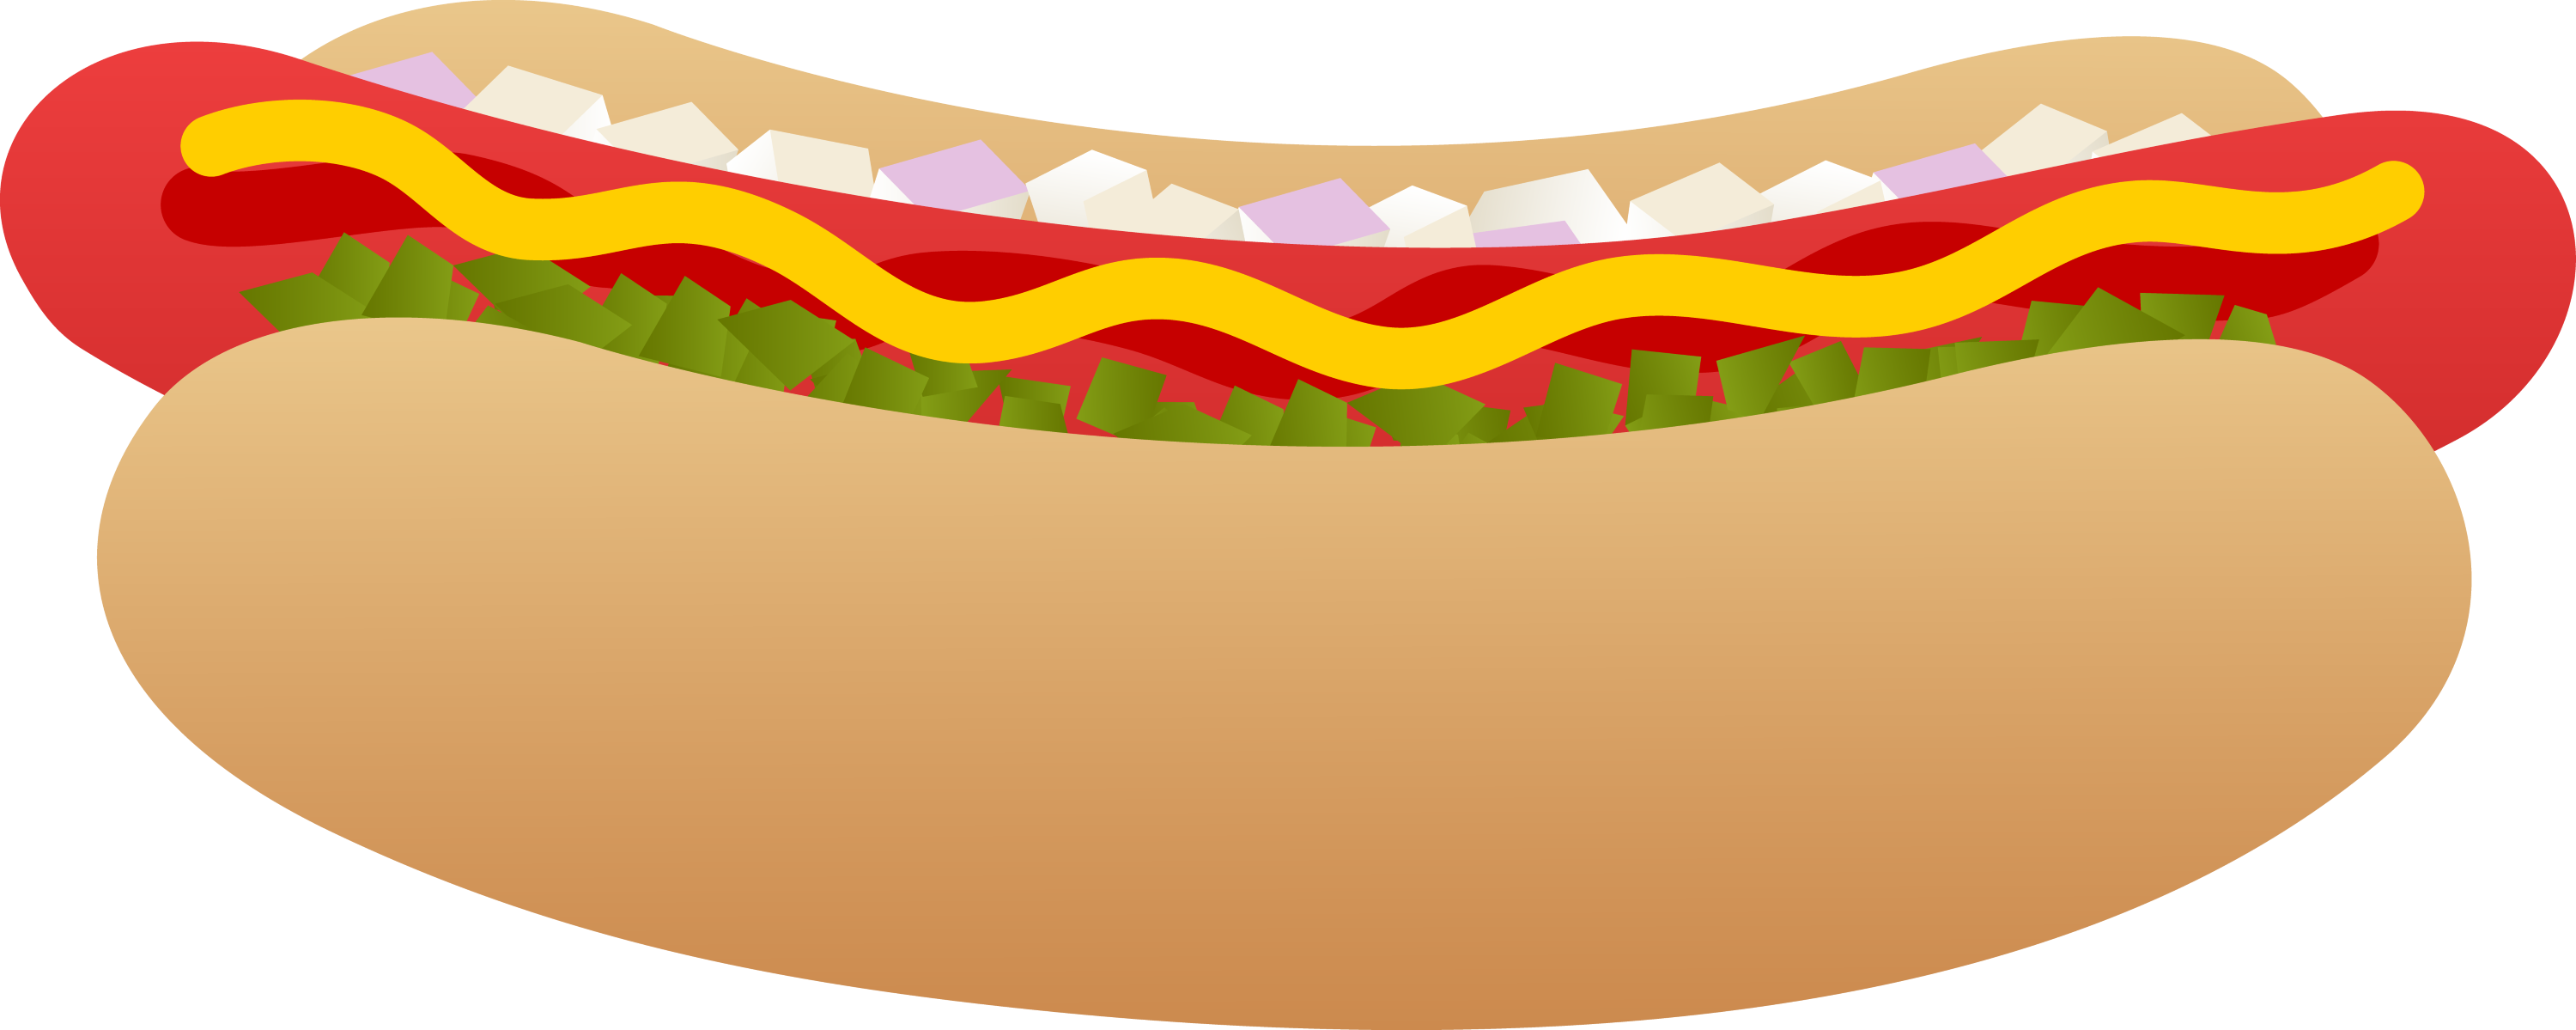 hot dog on a bun free clip art sketchup login sketchup login